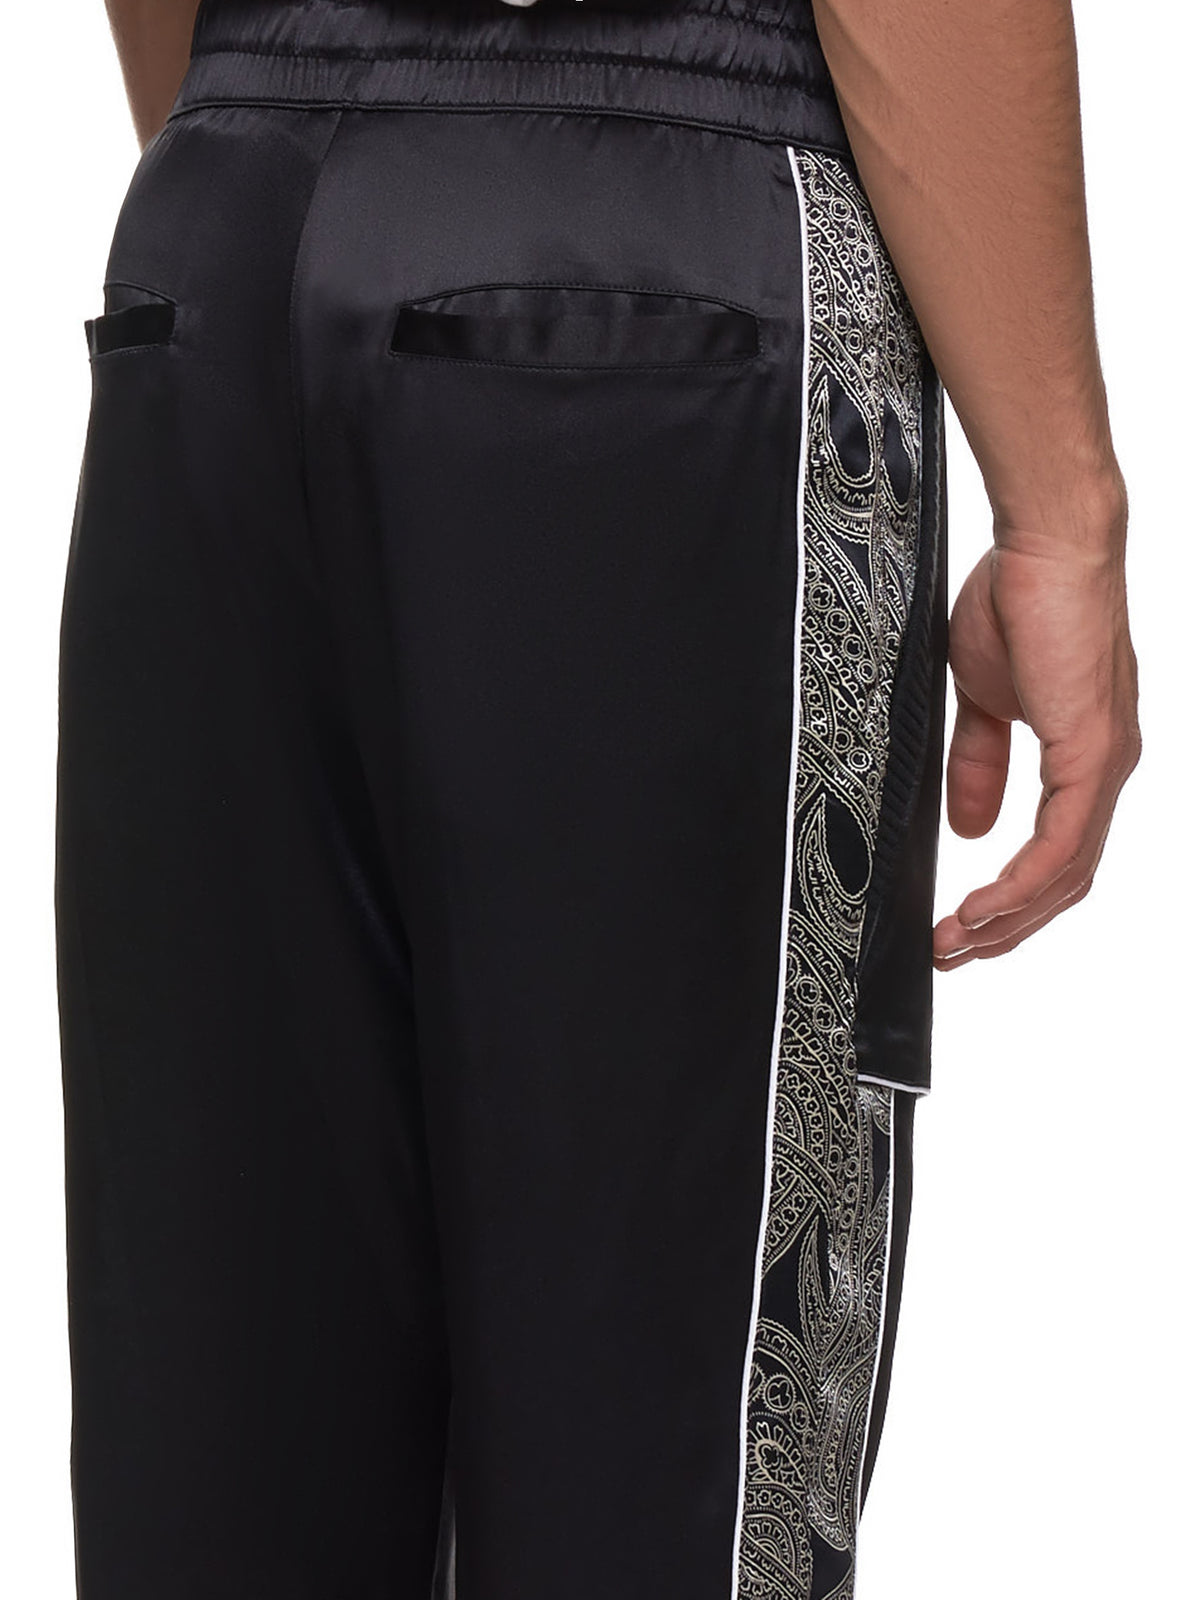 Courtside Trousers (COURTSIDE-TRS-BLK-PAISLEY)